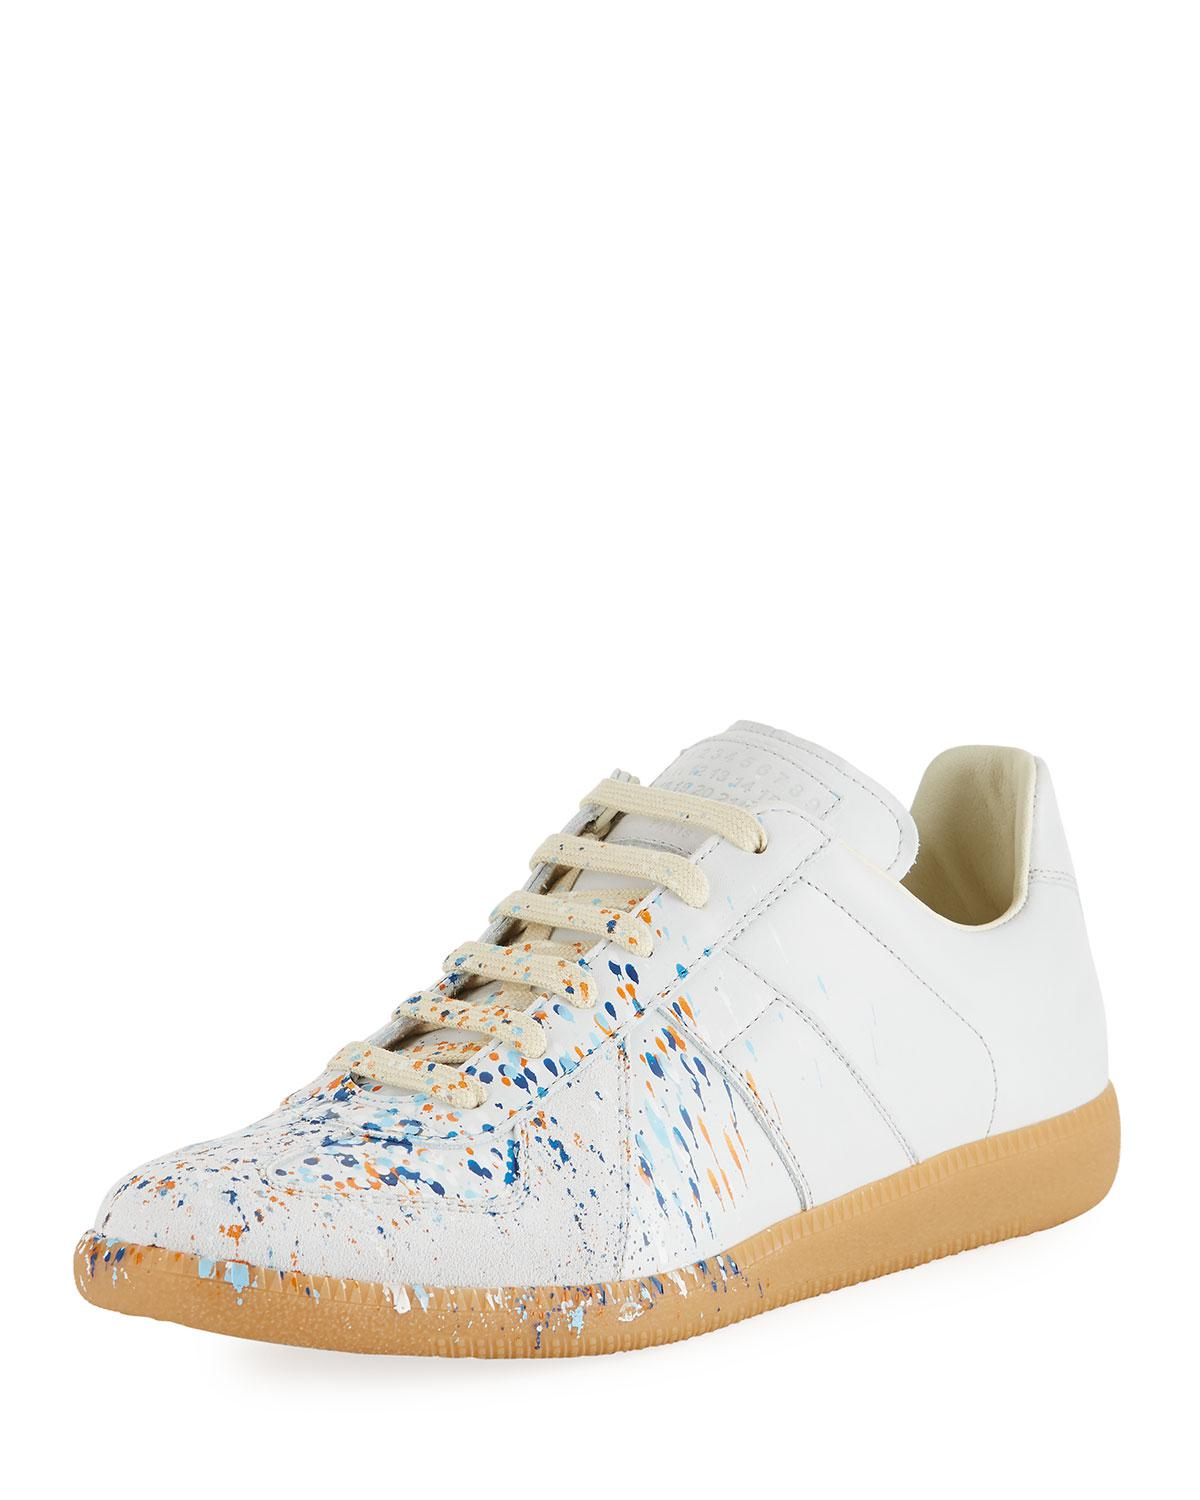 Mens Paint-Coated Canvas & Suede Sneakers Maison Martin Margiela DeGSL